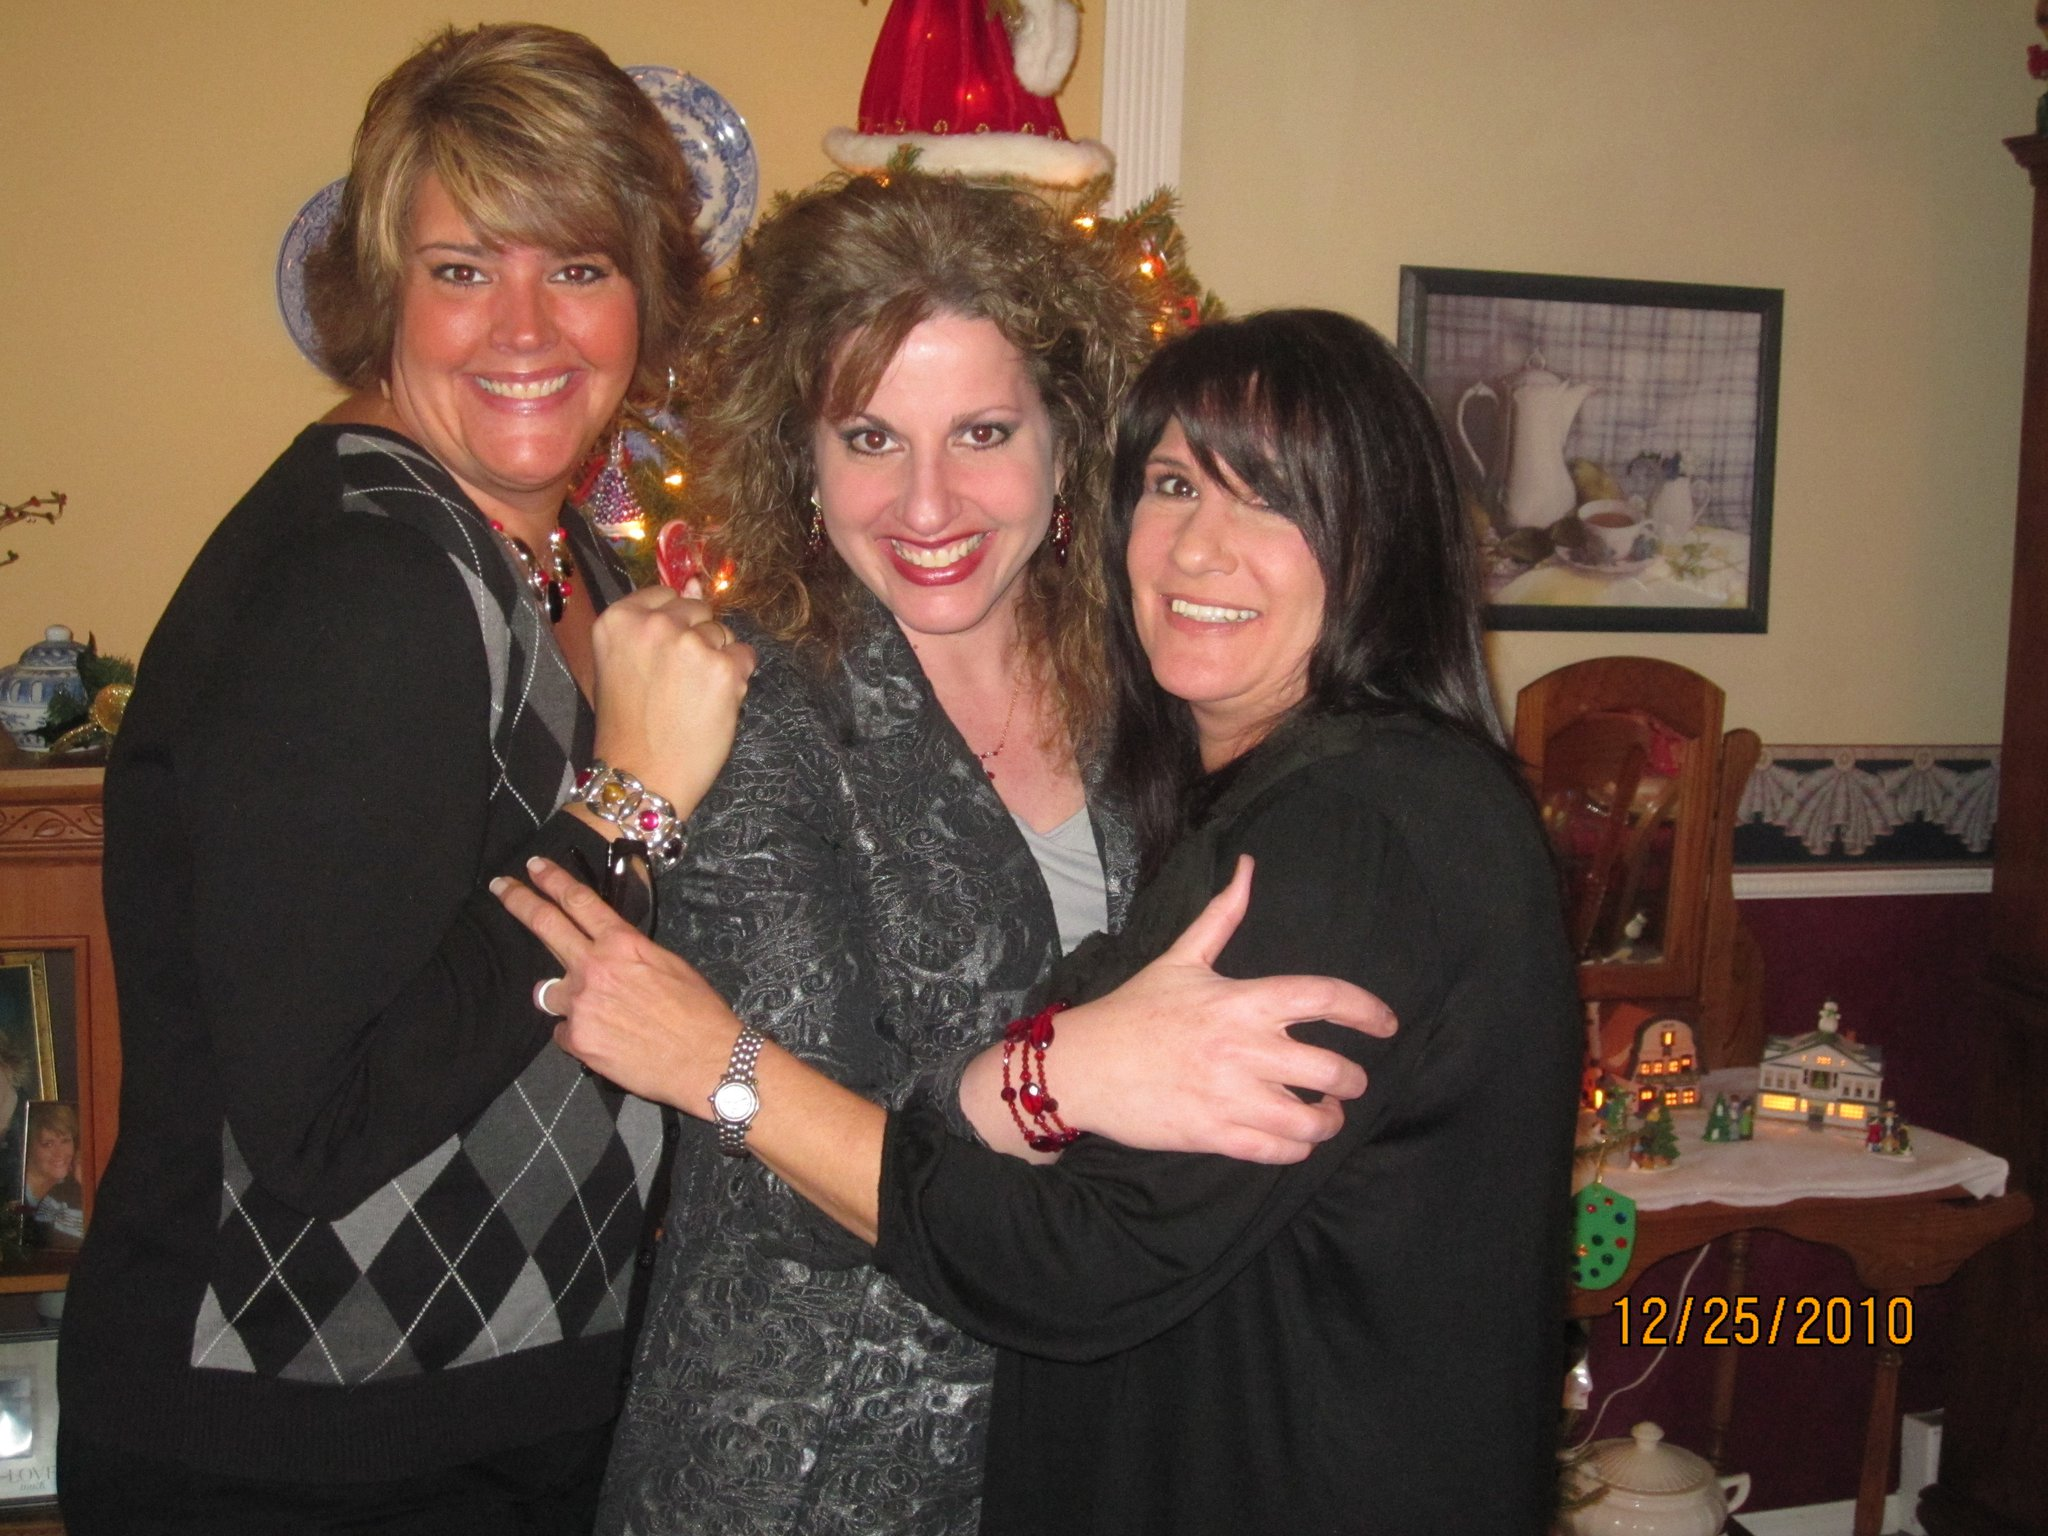 The three Behr girls Christmas 2010